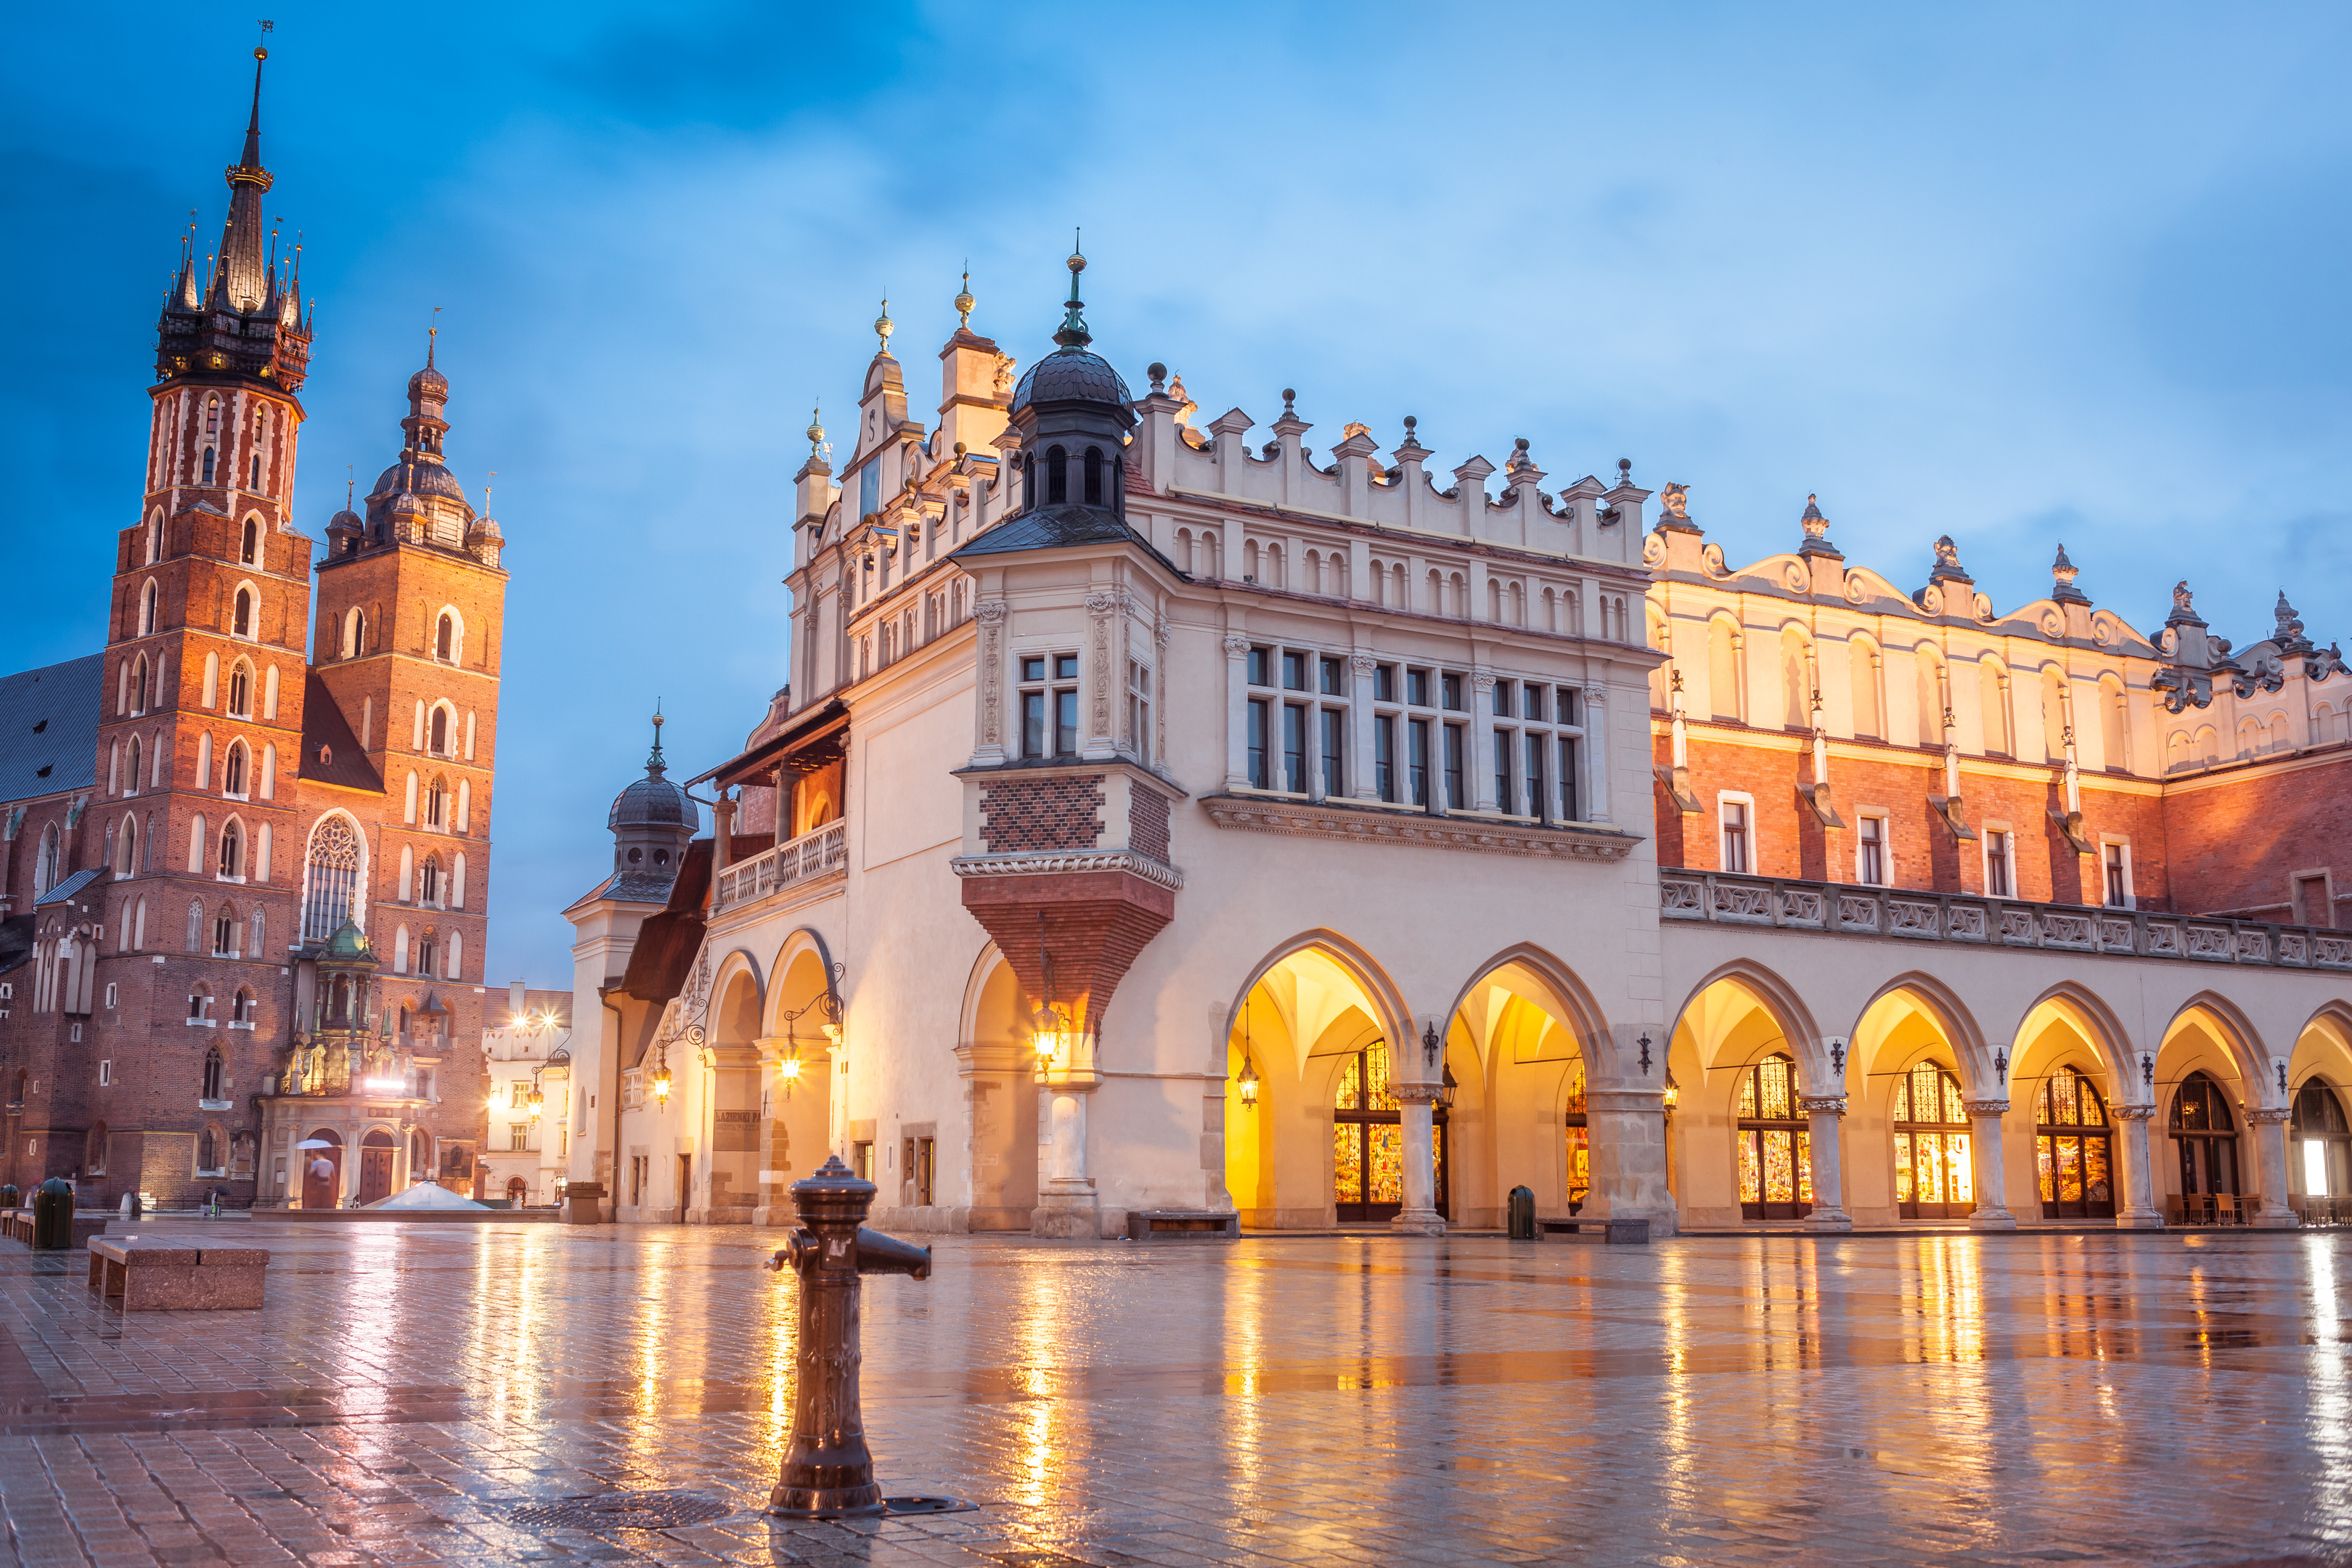 Center of Krakow (Getty Images/iStock)